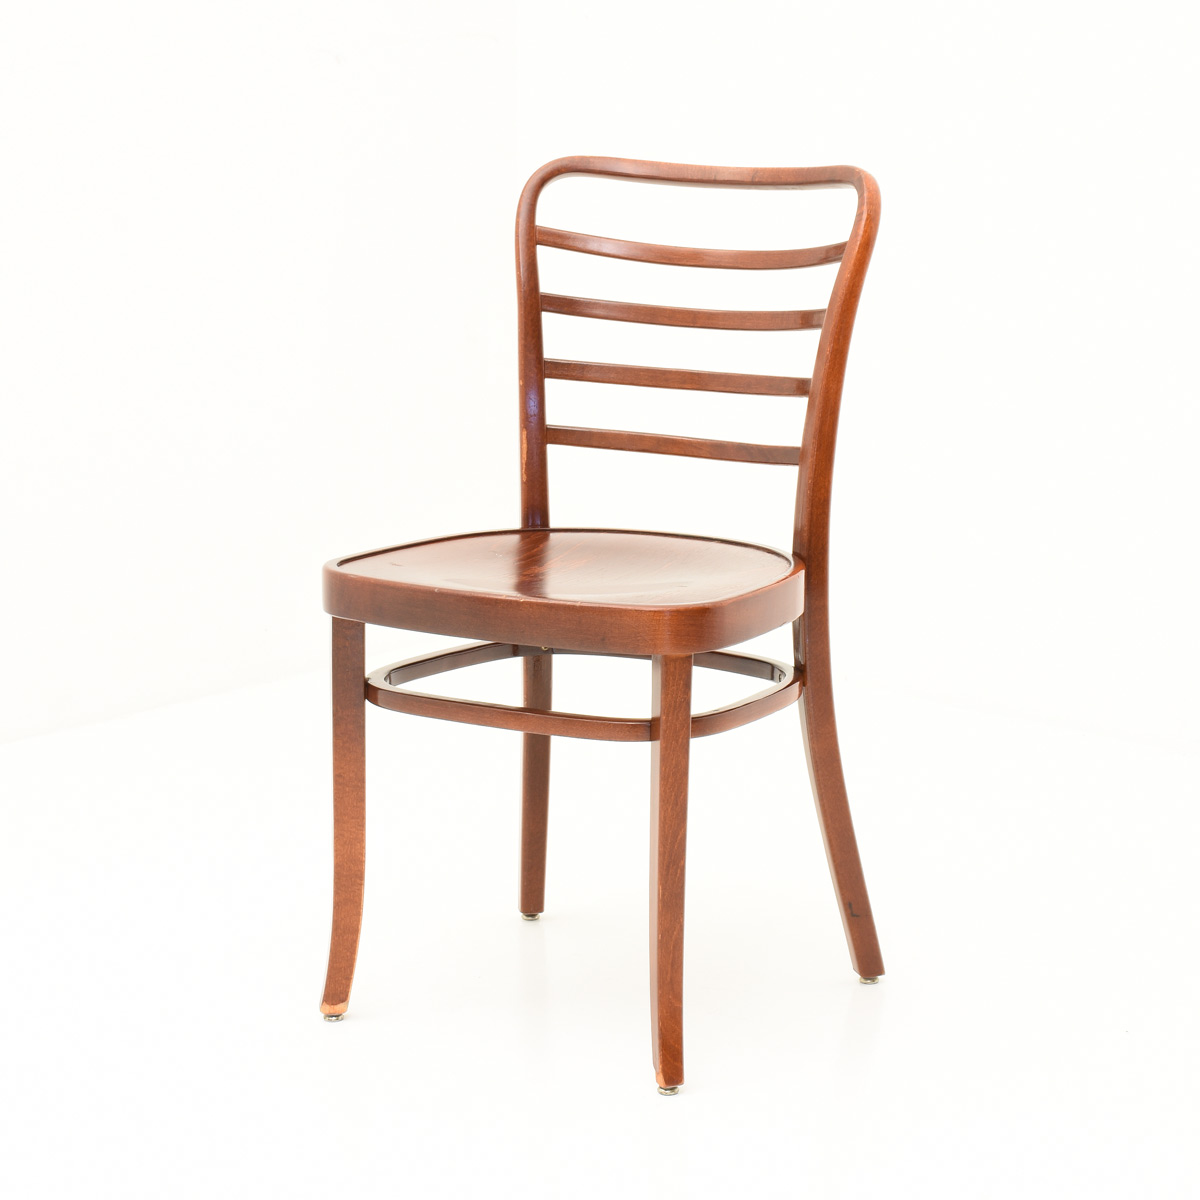 Thonet Holzstühle